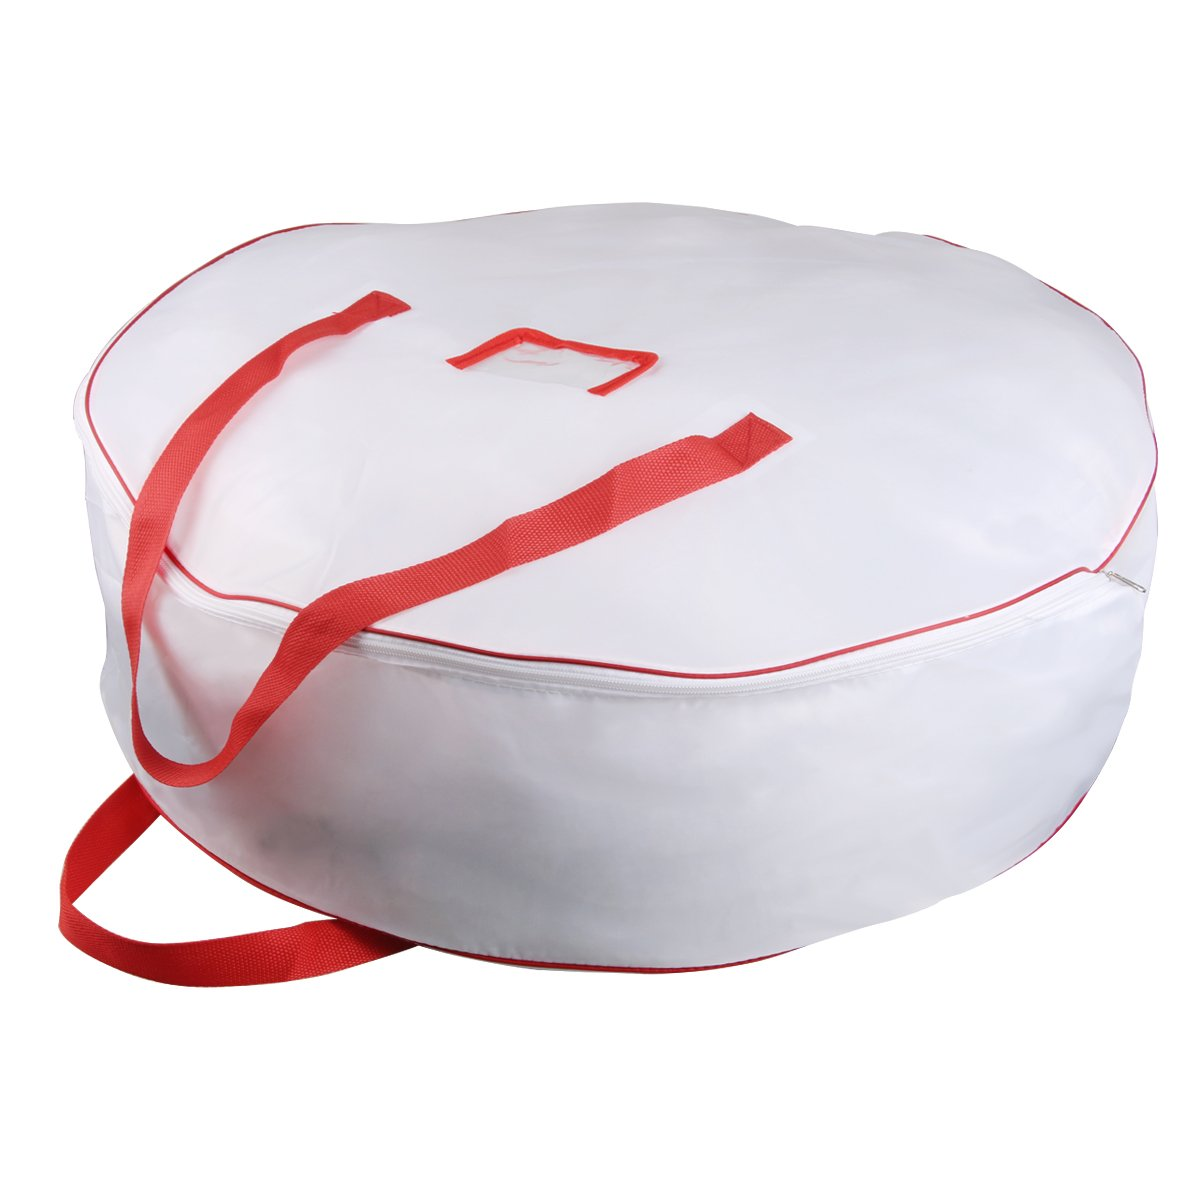 Christmas Wreath Storage Bag - Xmas Large Wreath Container - Reinforced Wide Handle and Double Sleek Zipper - Heavy Duty Protect Your Holiday Advent, Garland, Party Decorations and Ornaments 30'',White